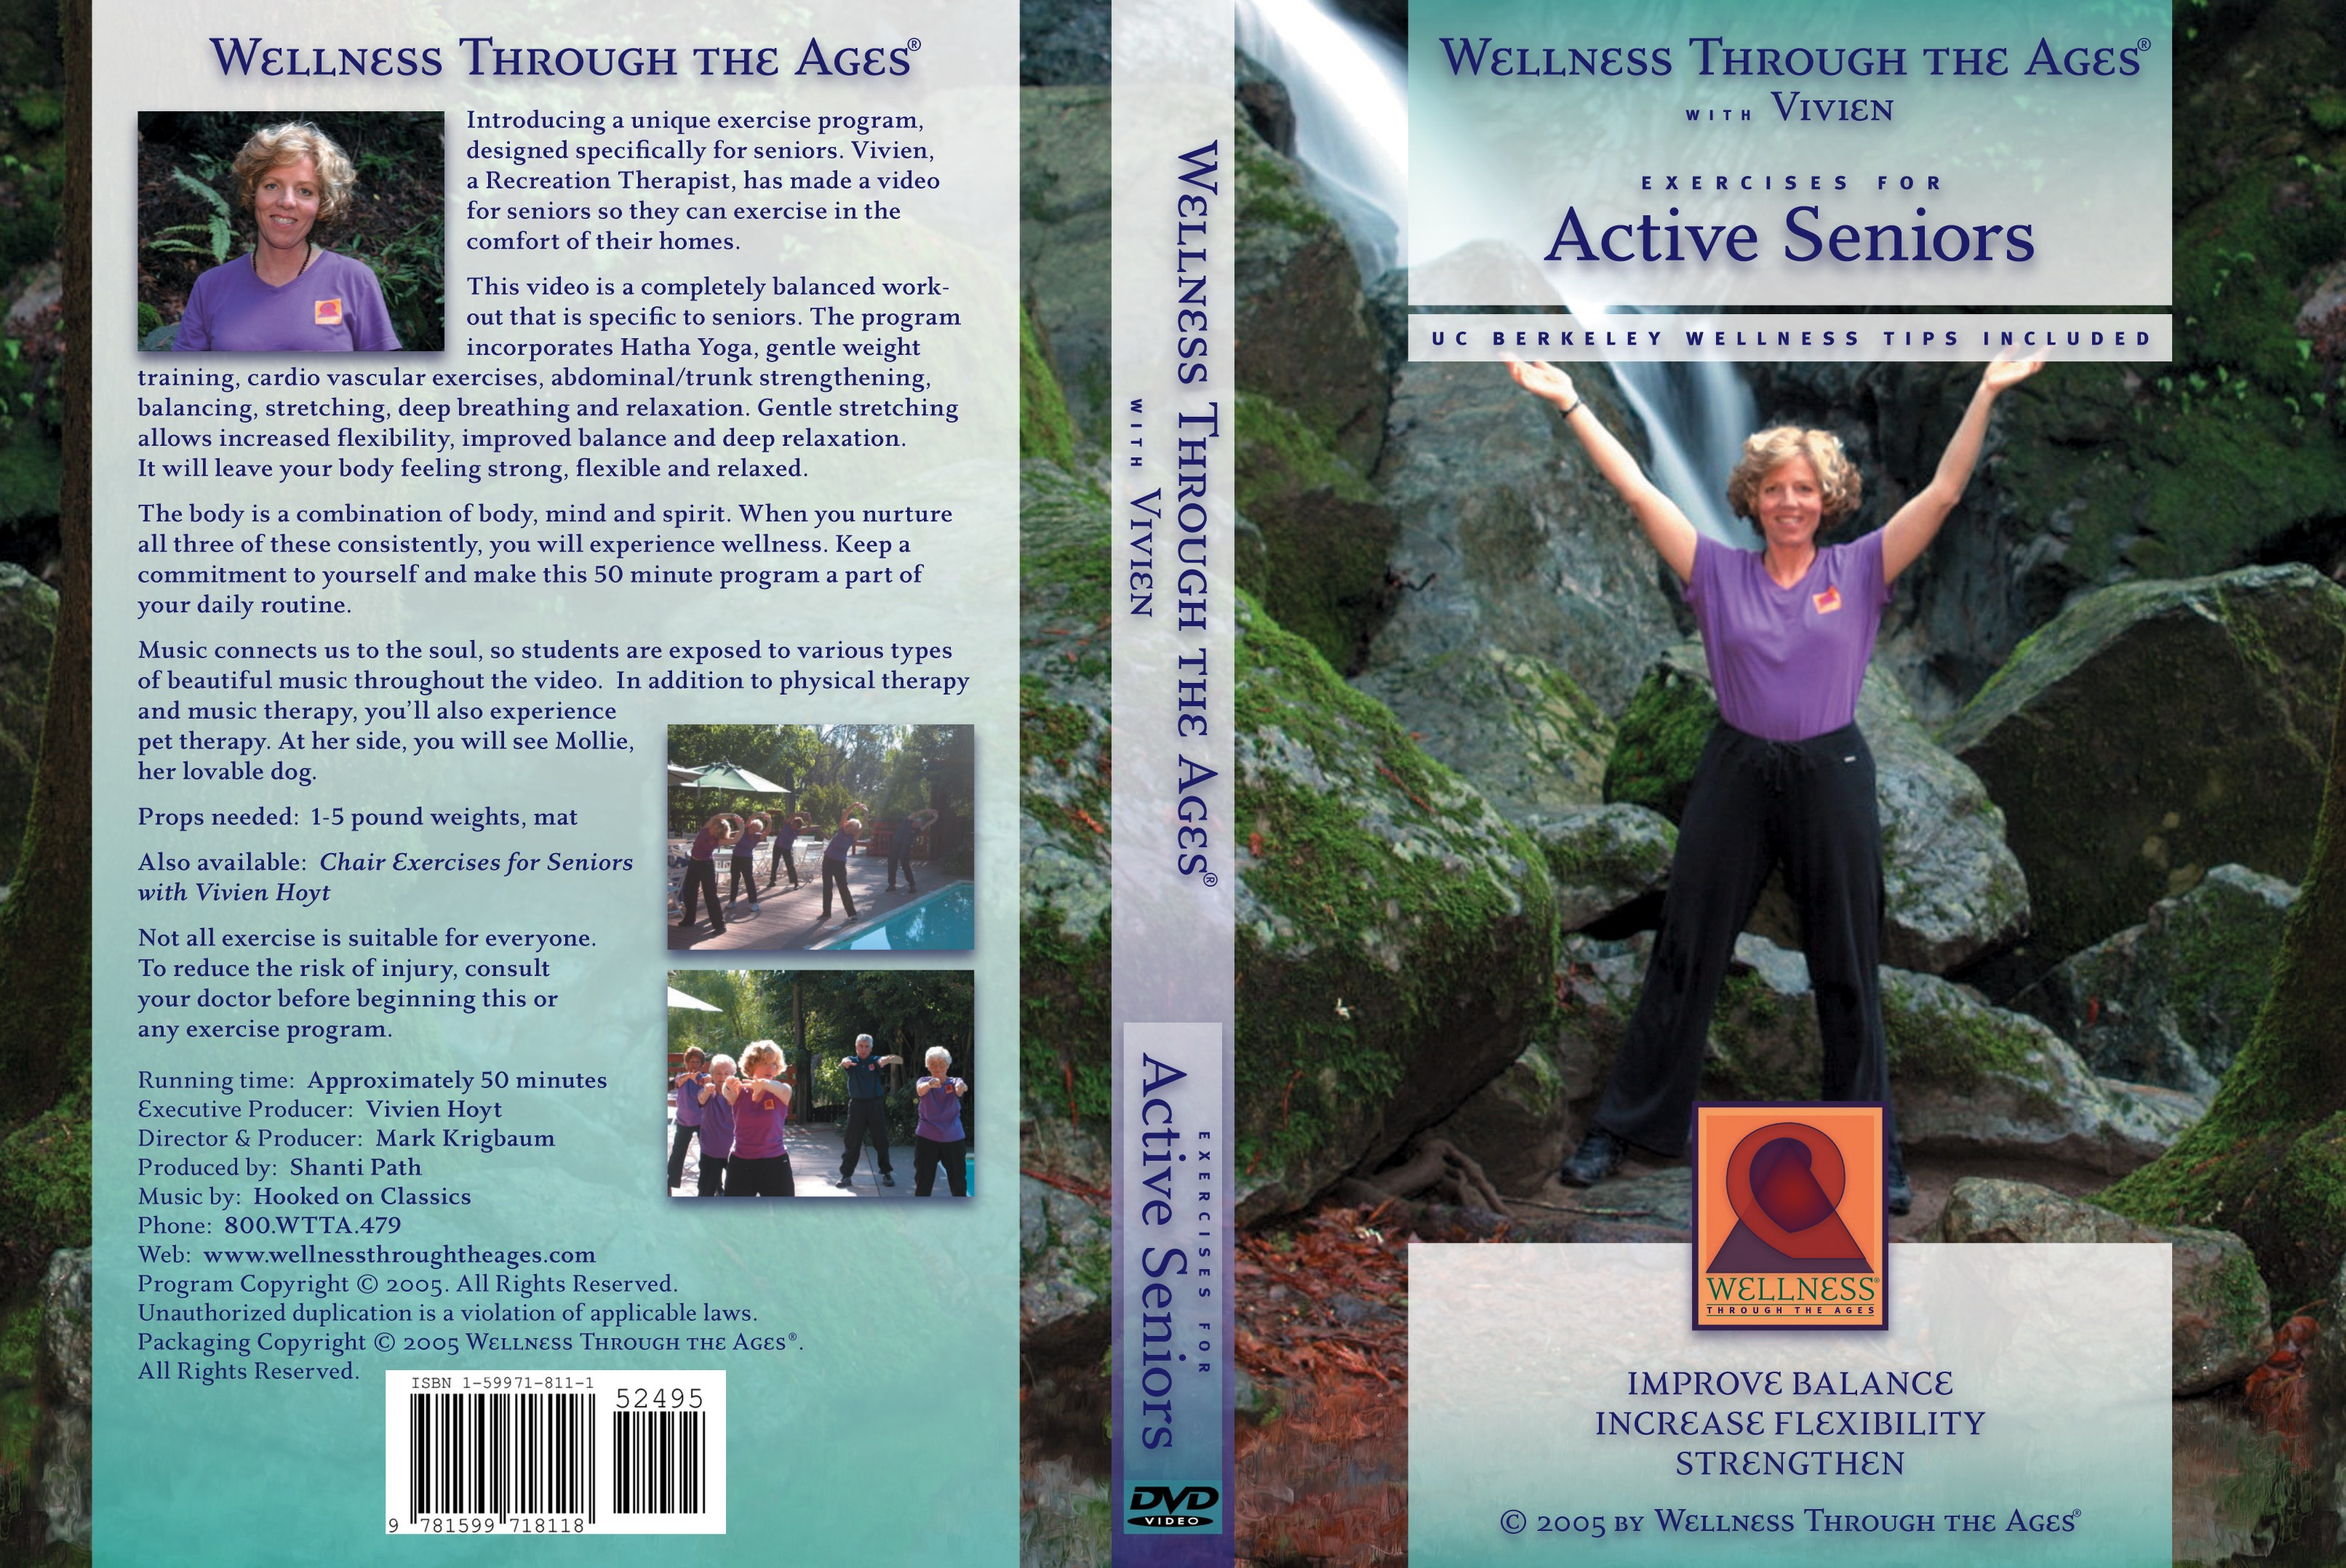 Wellness Through The Ages Videos